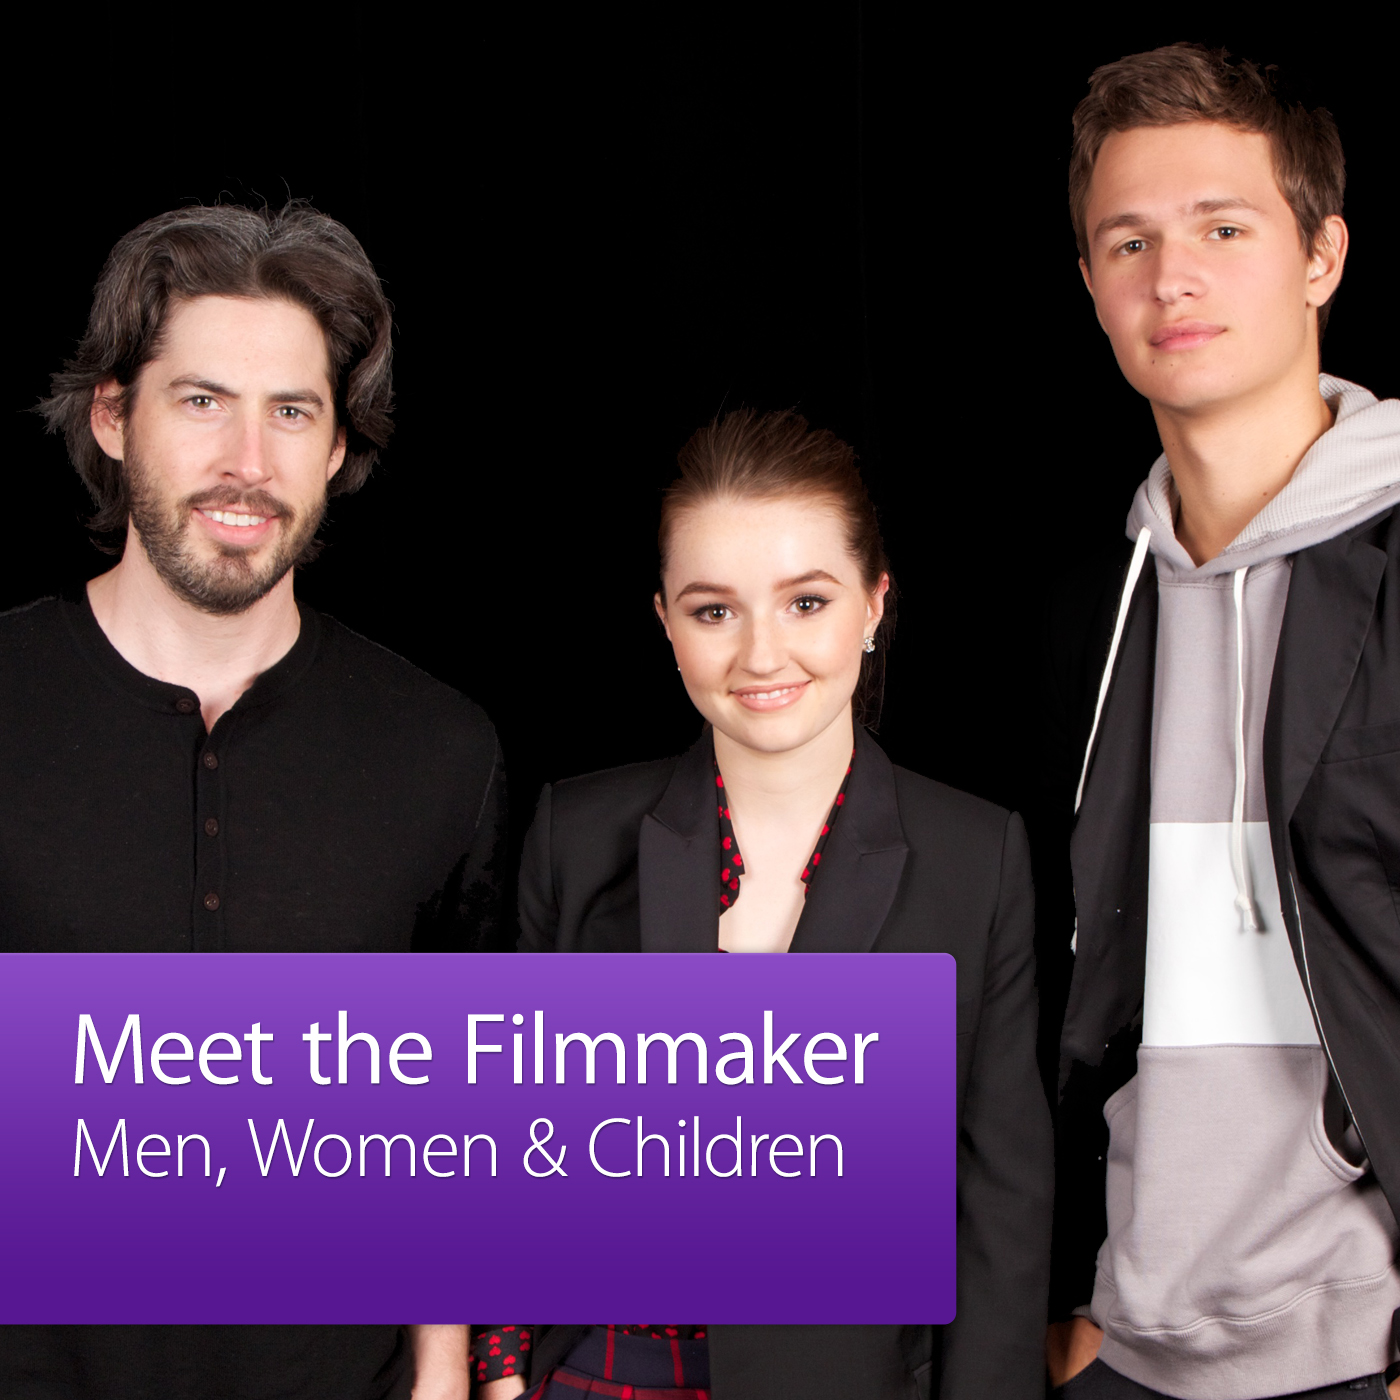 Men, Women & Children: Meet the Filmmaker